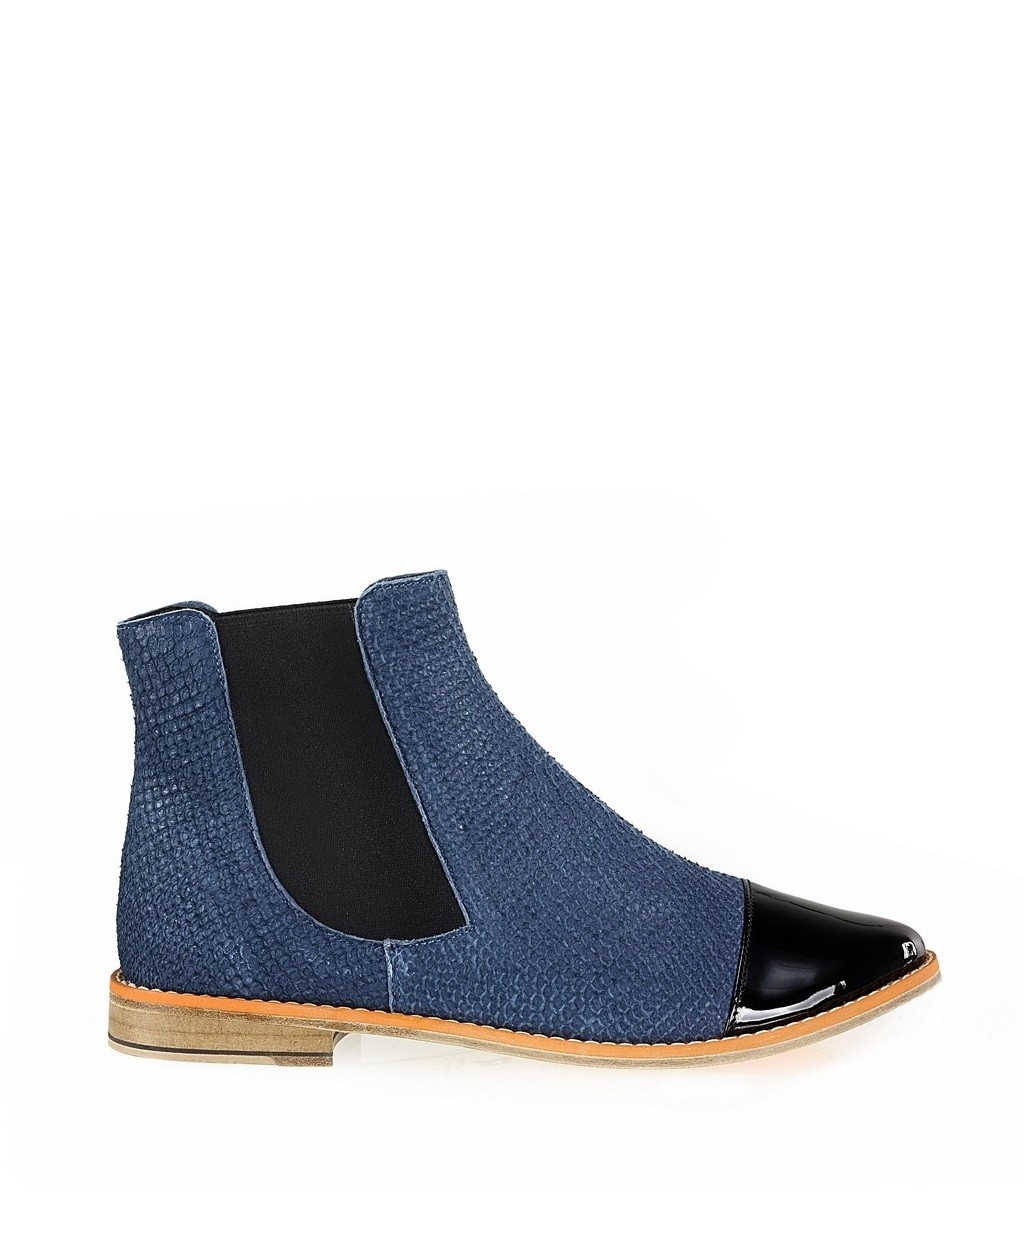 Blue Leather Chelsea Boots - 52573